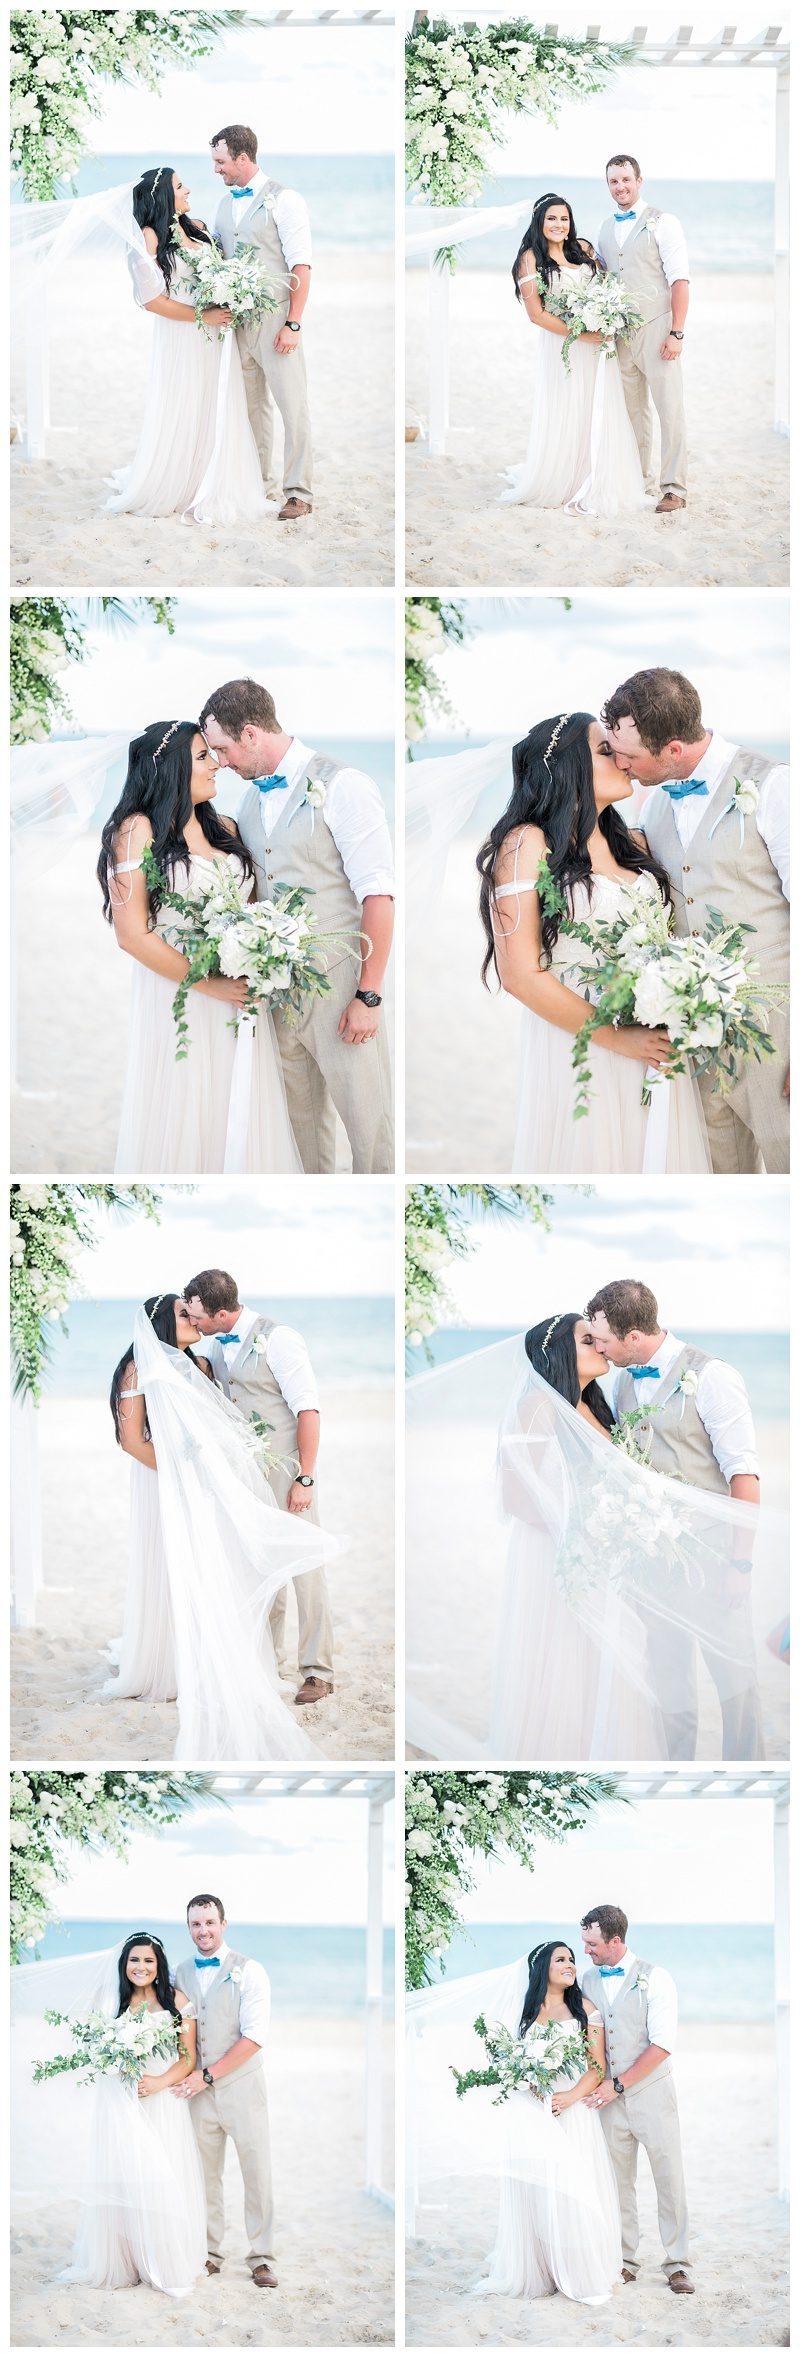 Whitney Marie Photography Blog. Playa Del Carmen, Mexico . Destination Wedding Photographer62.jpg